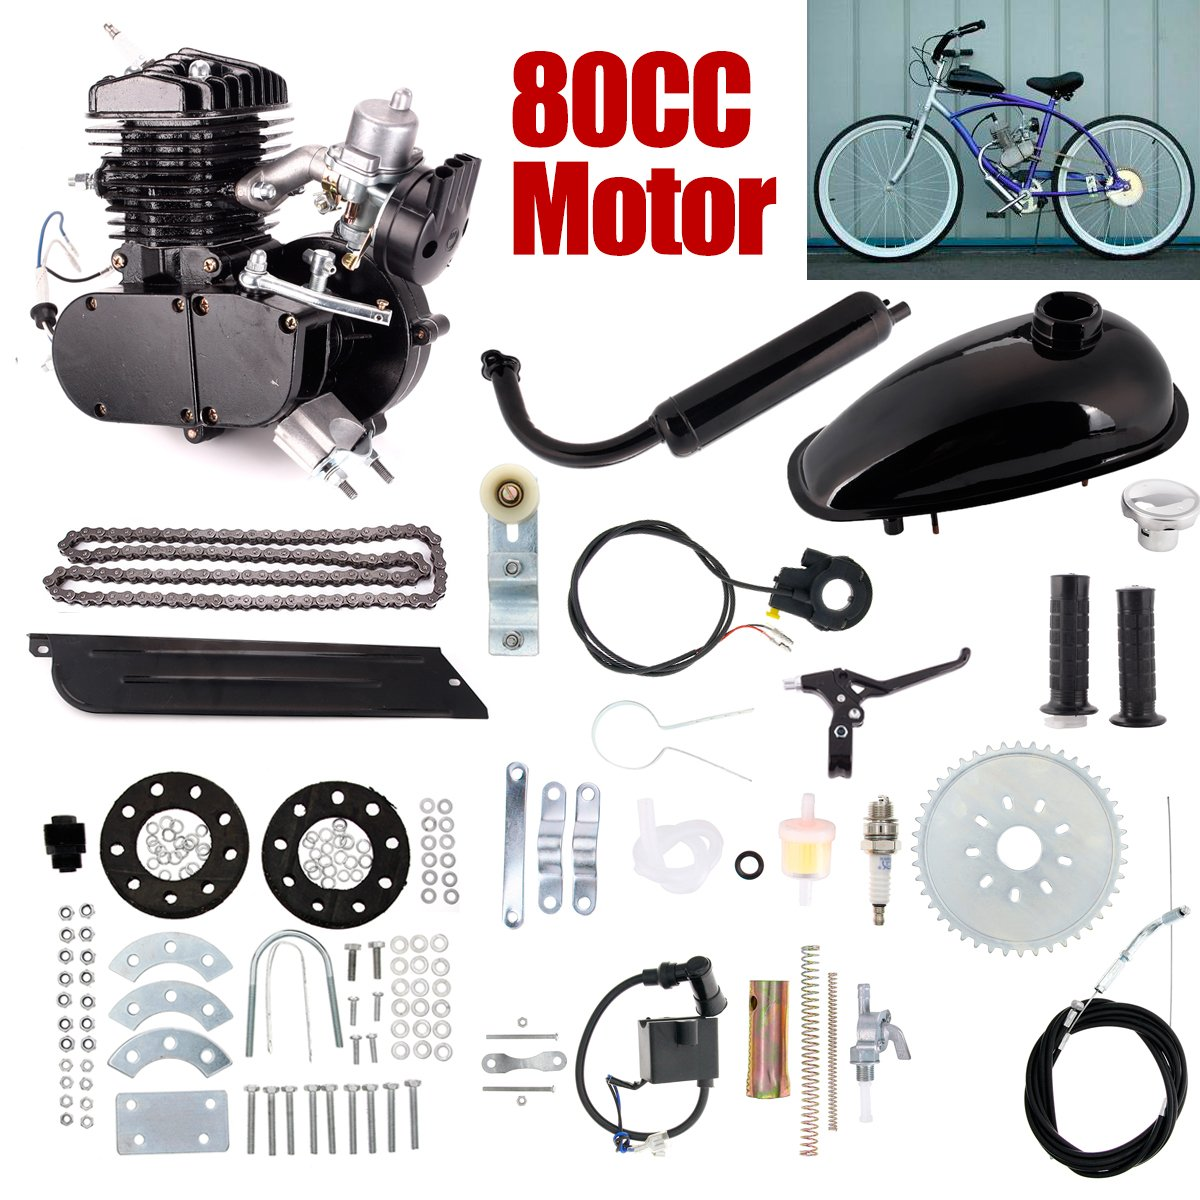 Cluch On 46cc Bike Motter Owners Manual China